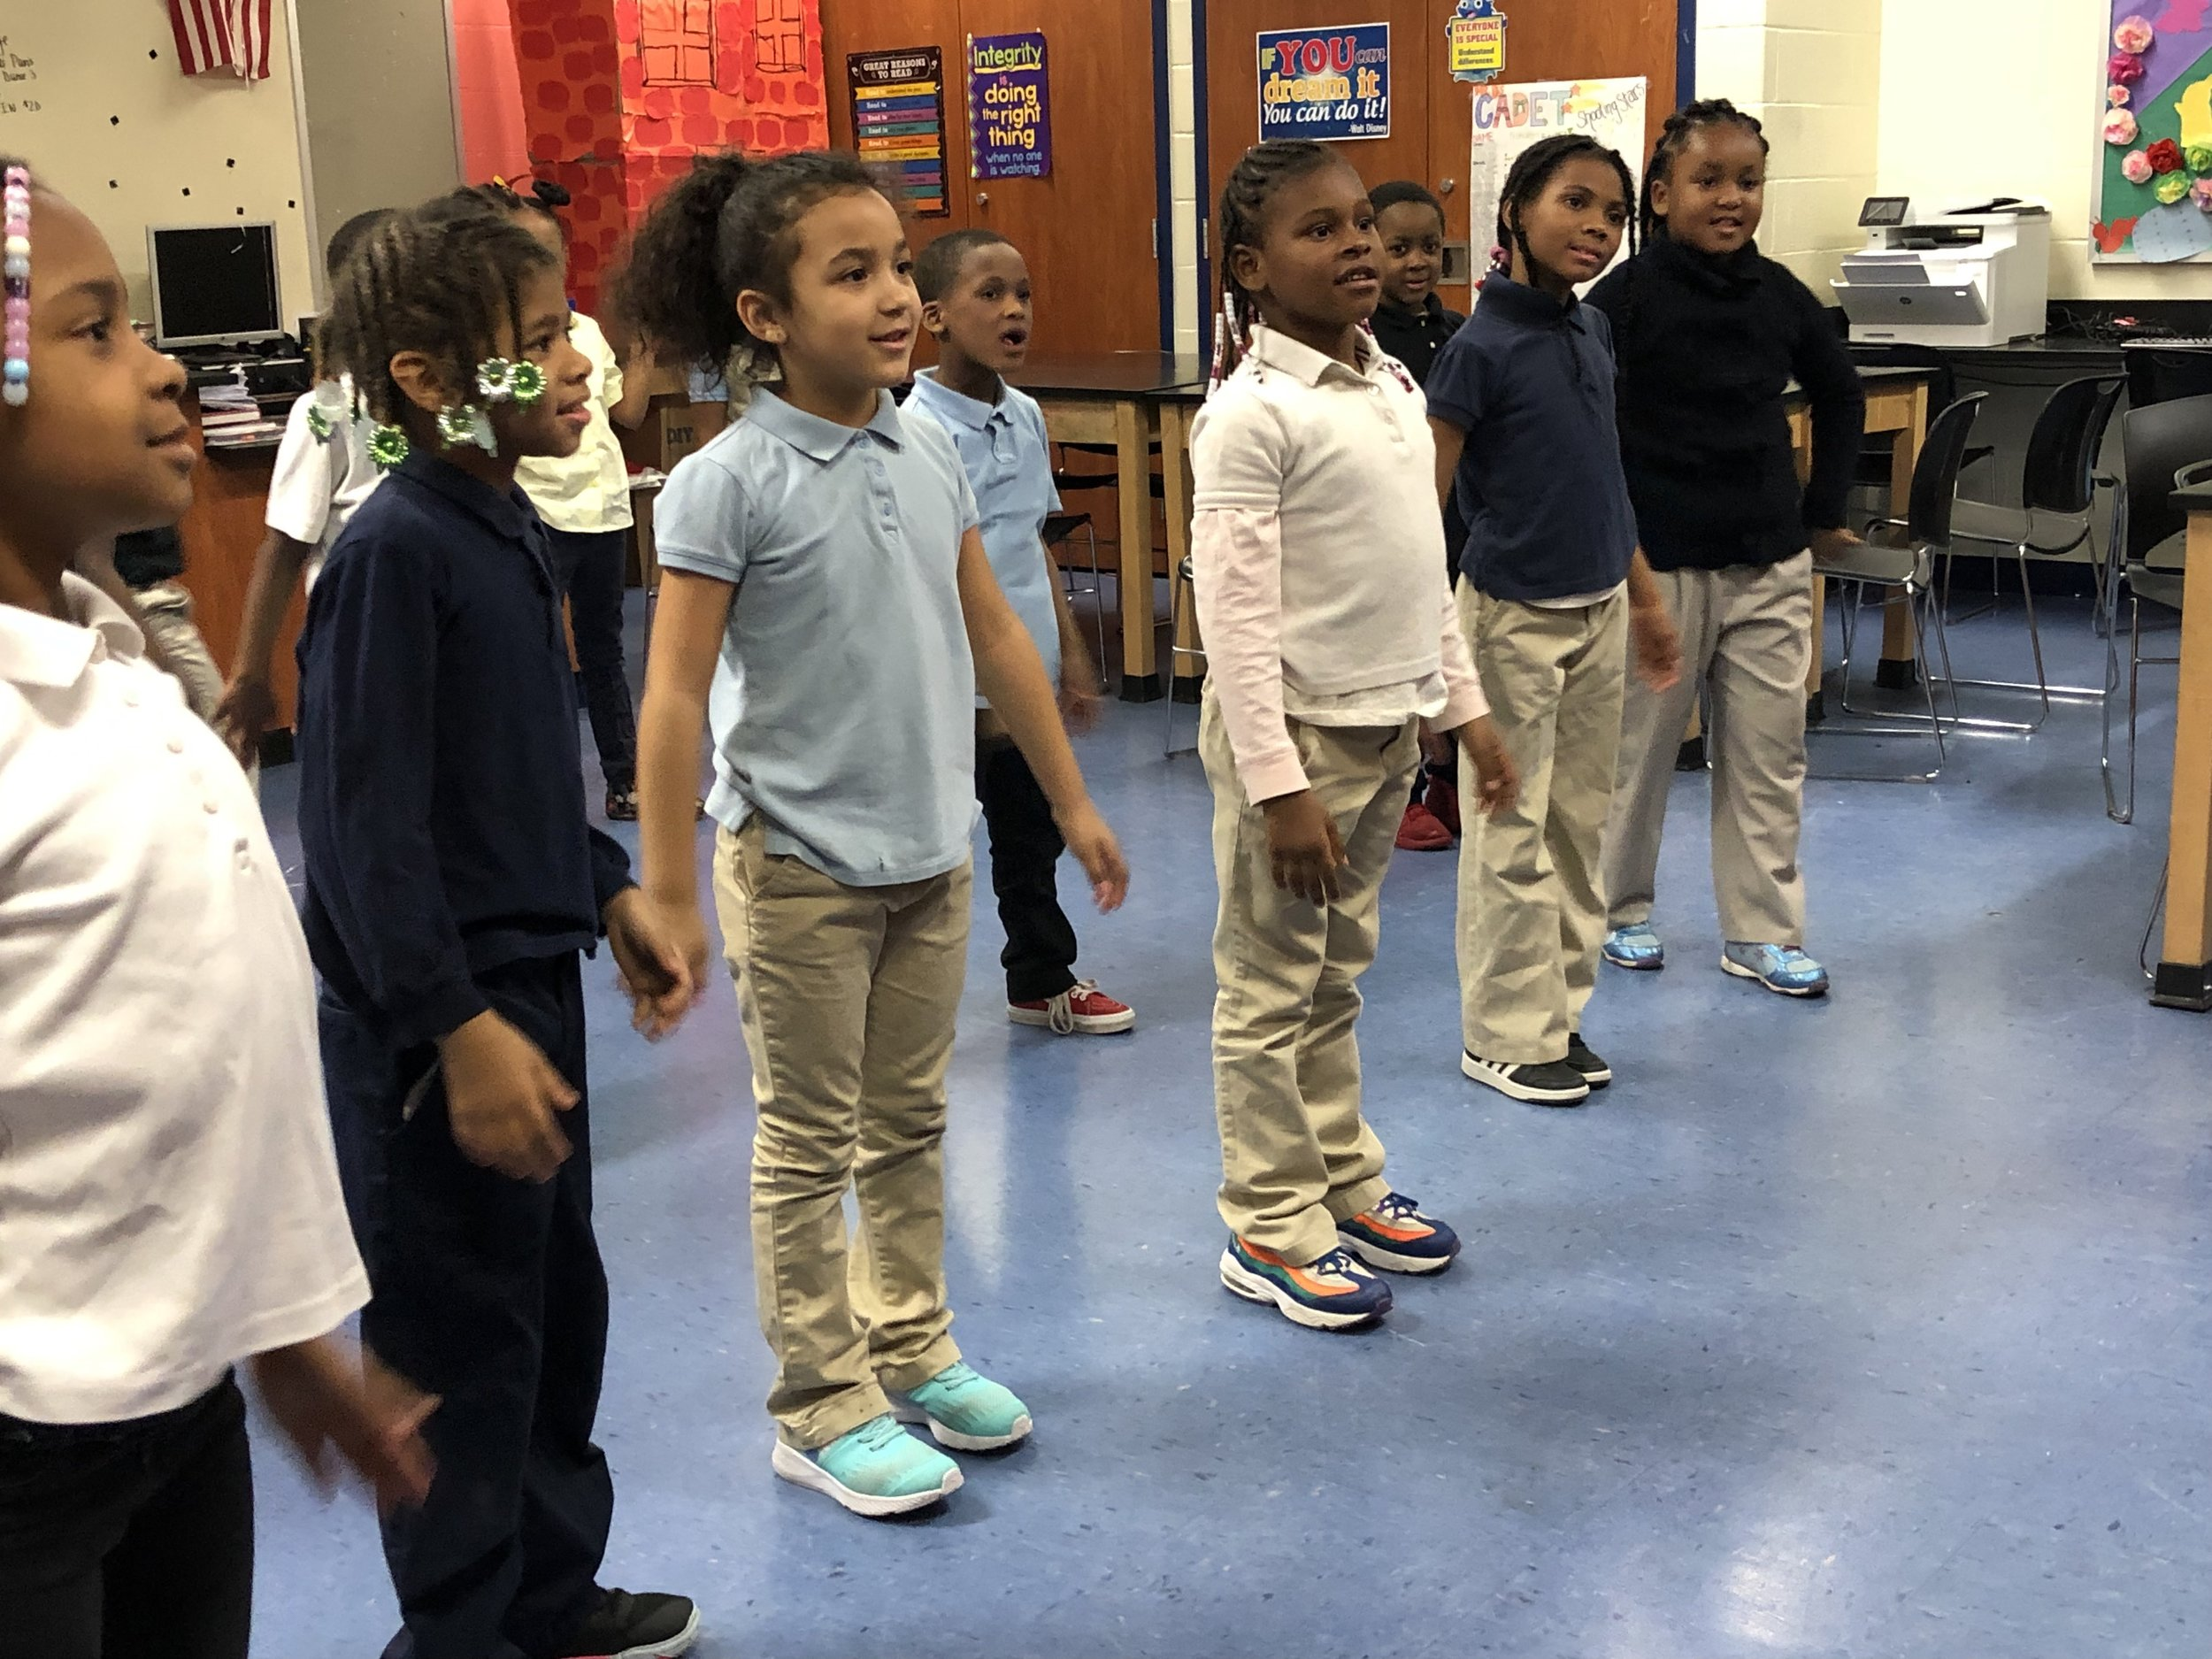 Children standing up ready for activity in classroom